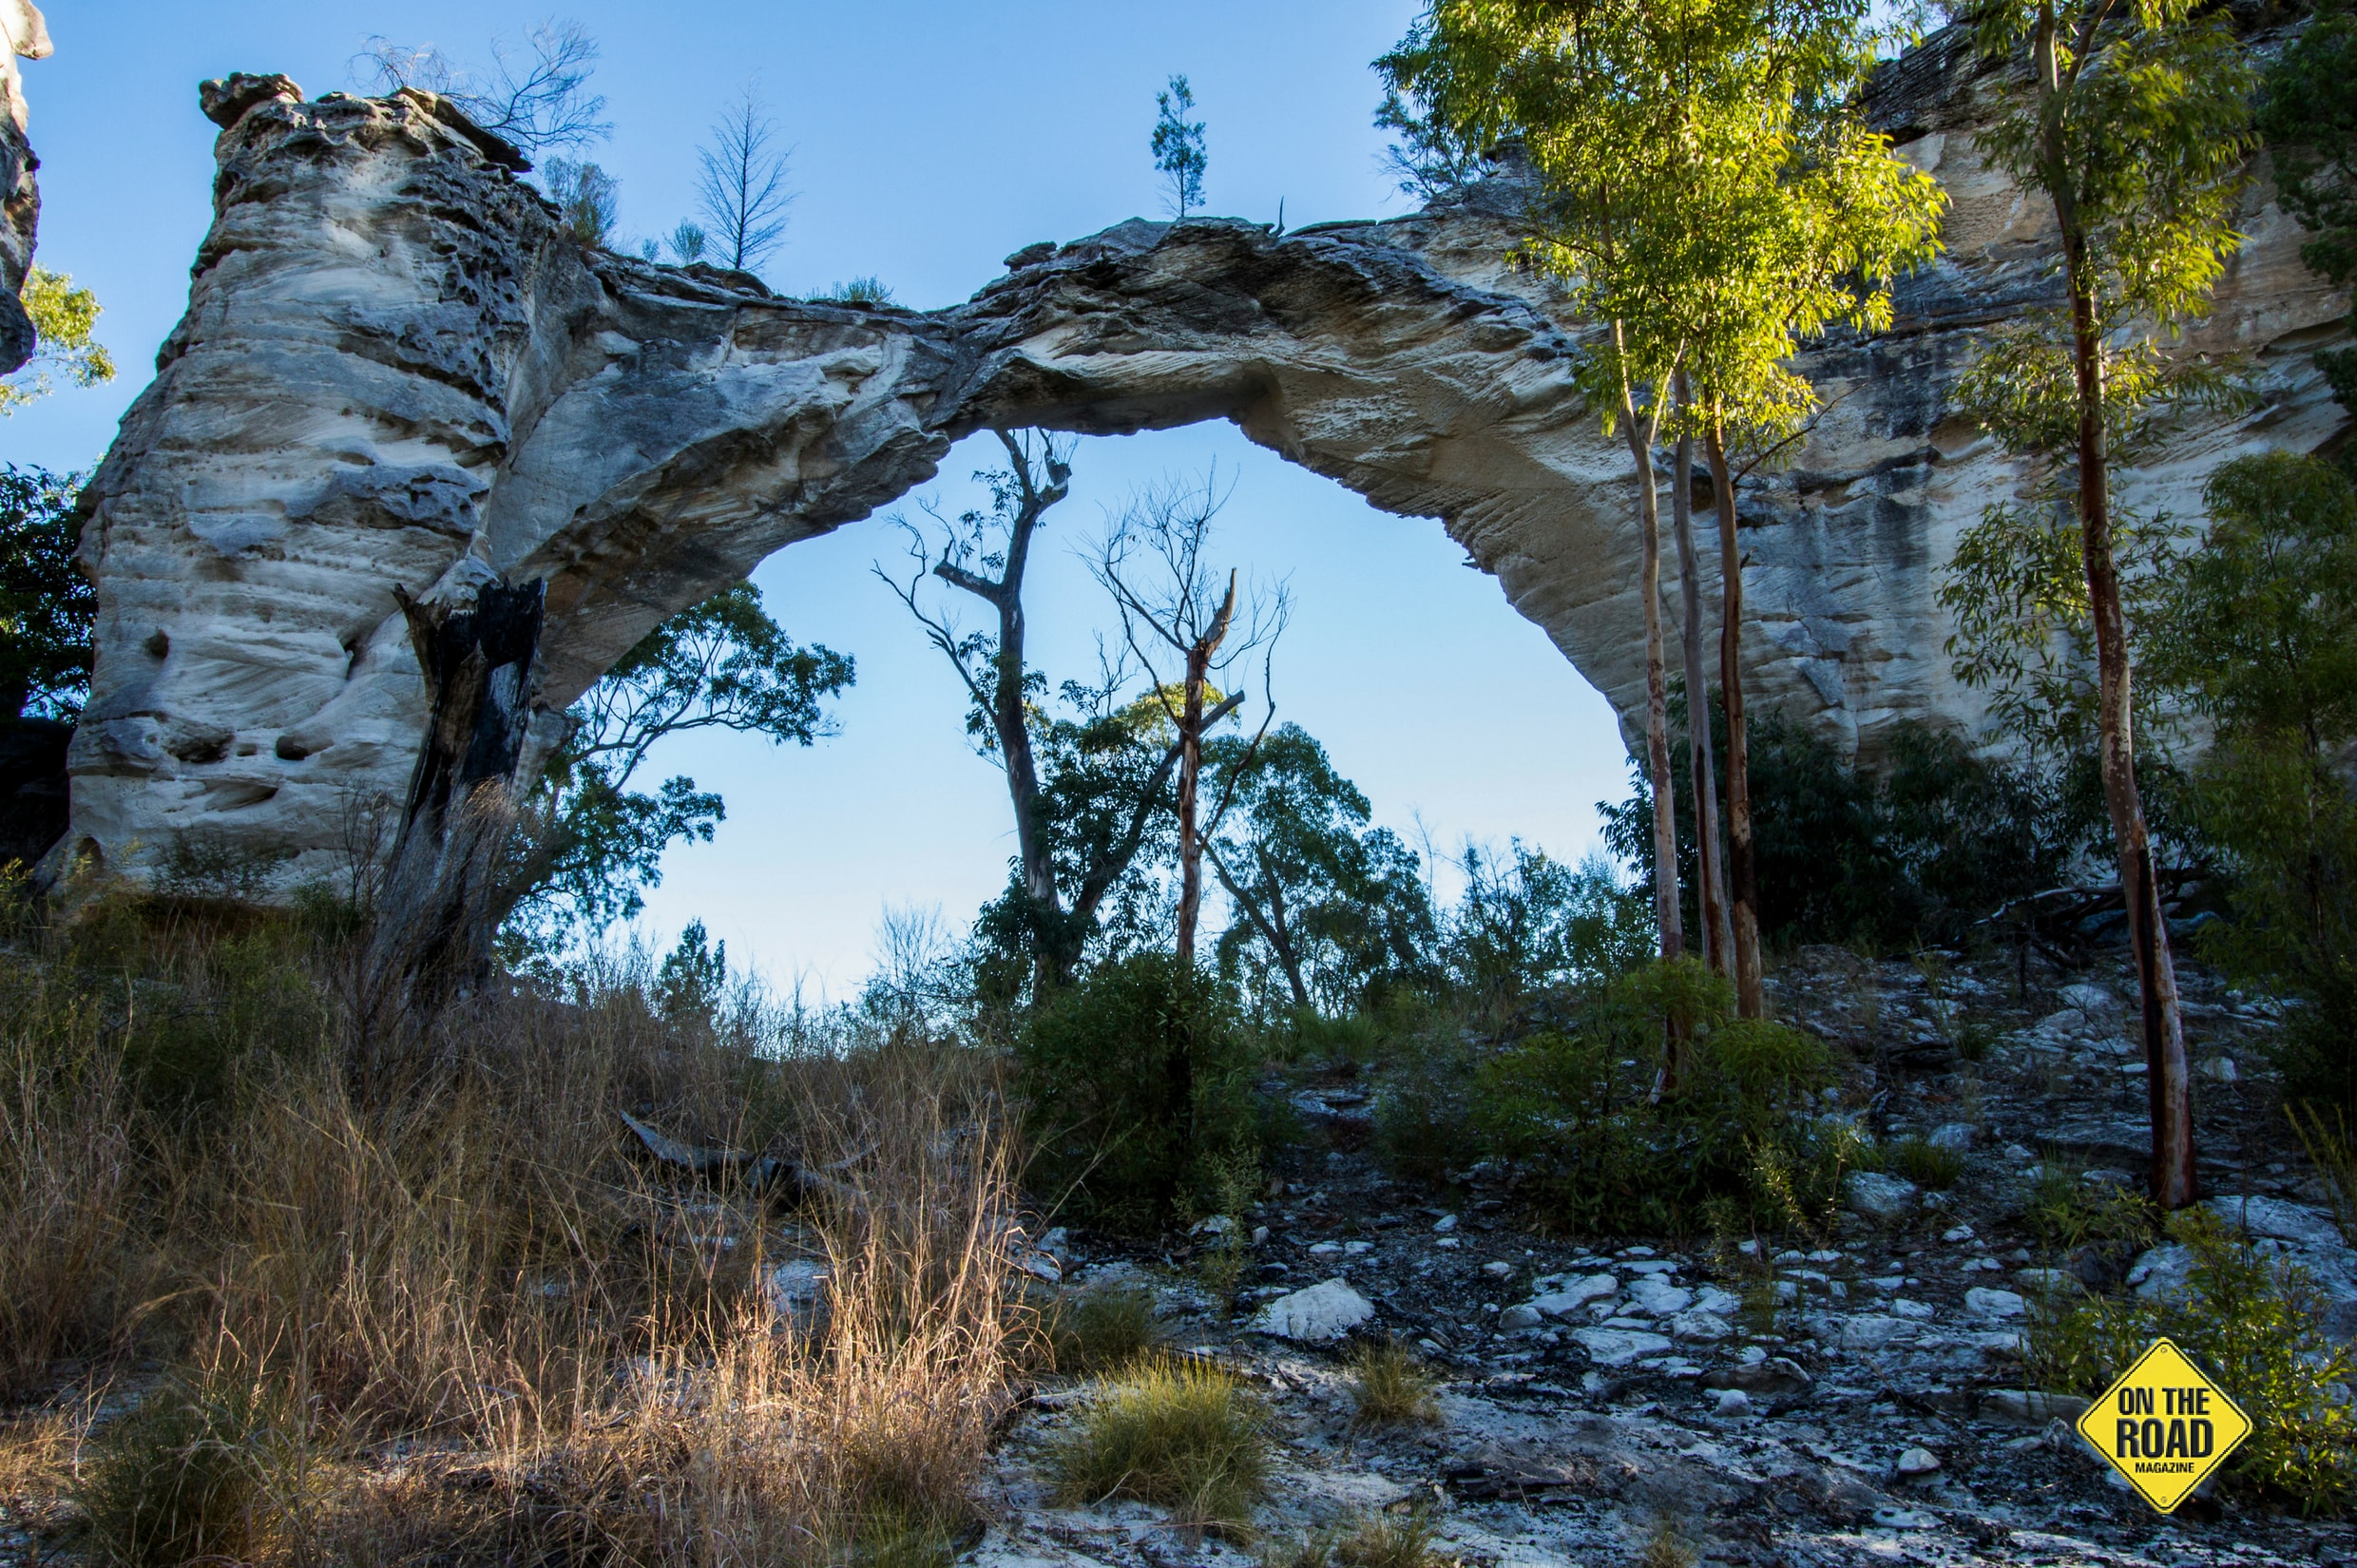 One of the many wonders of the impressive sandstone formations, Marlong Arch.